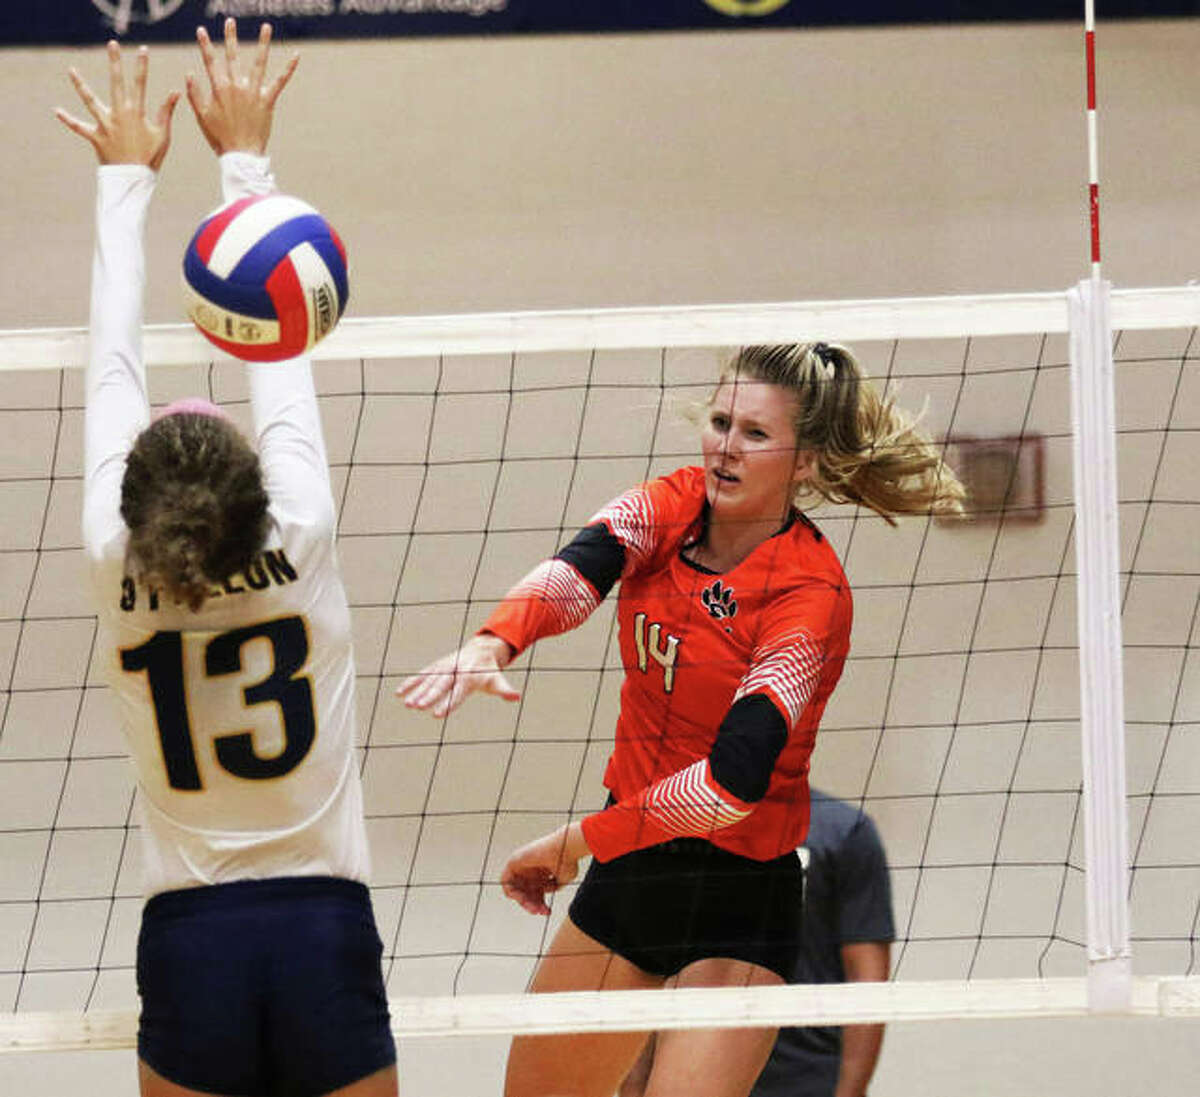 Edwardsville's Maddie Isringhausen hammers home a kill past the block of O'Fallon's Faith Mayfield (13) during a SWC match last season in O'Fallon.